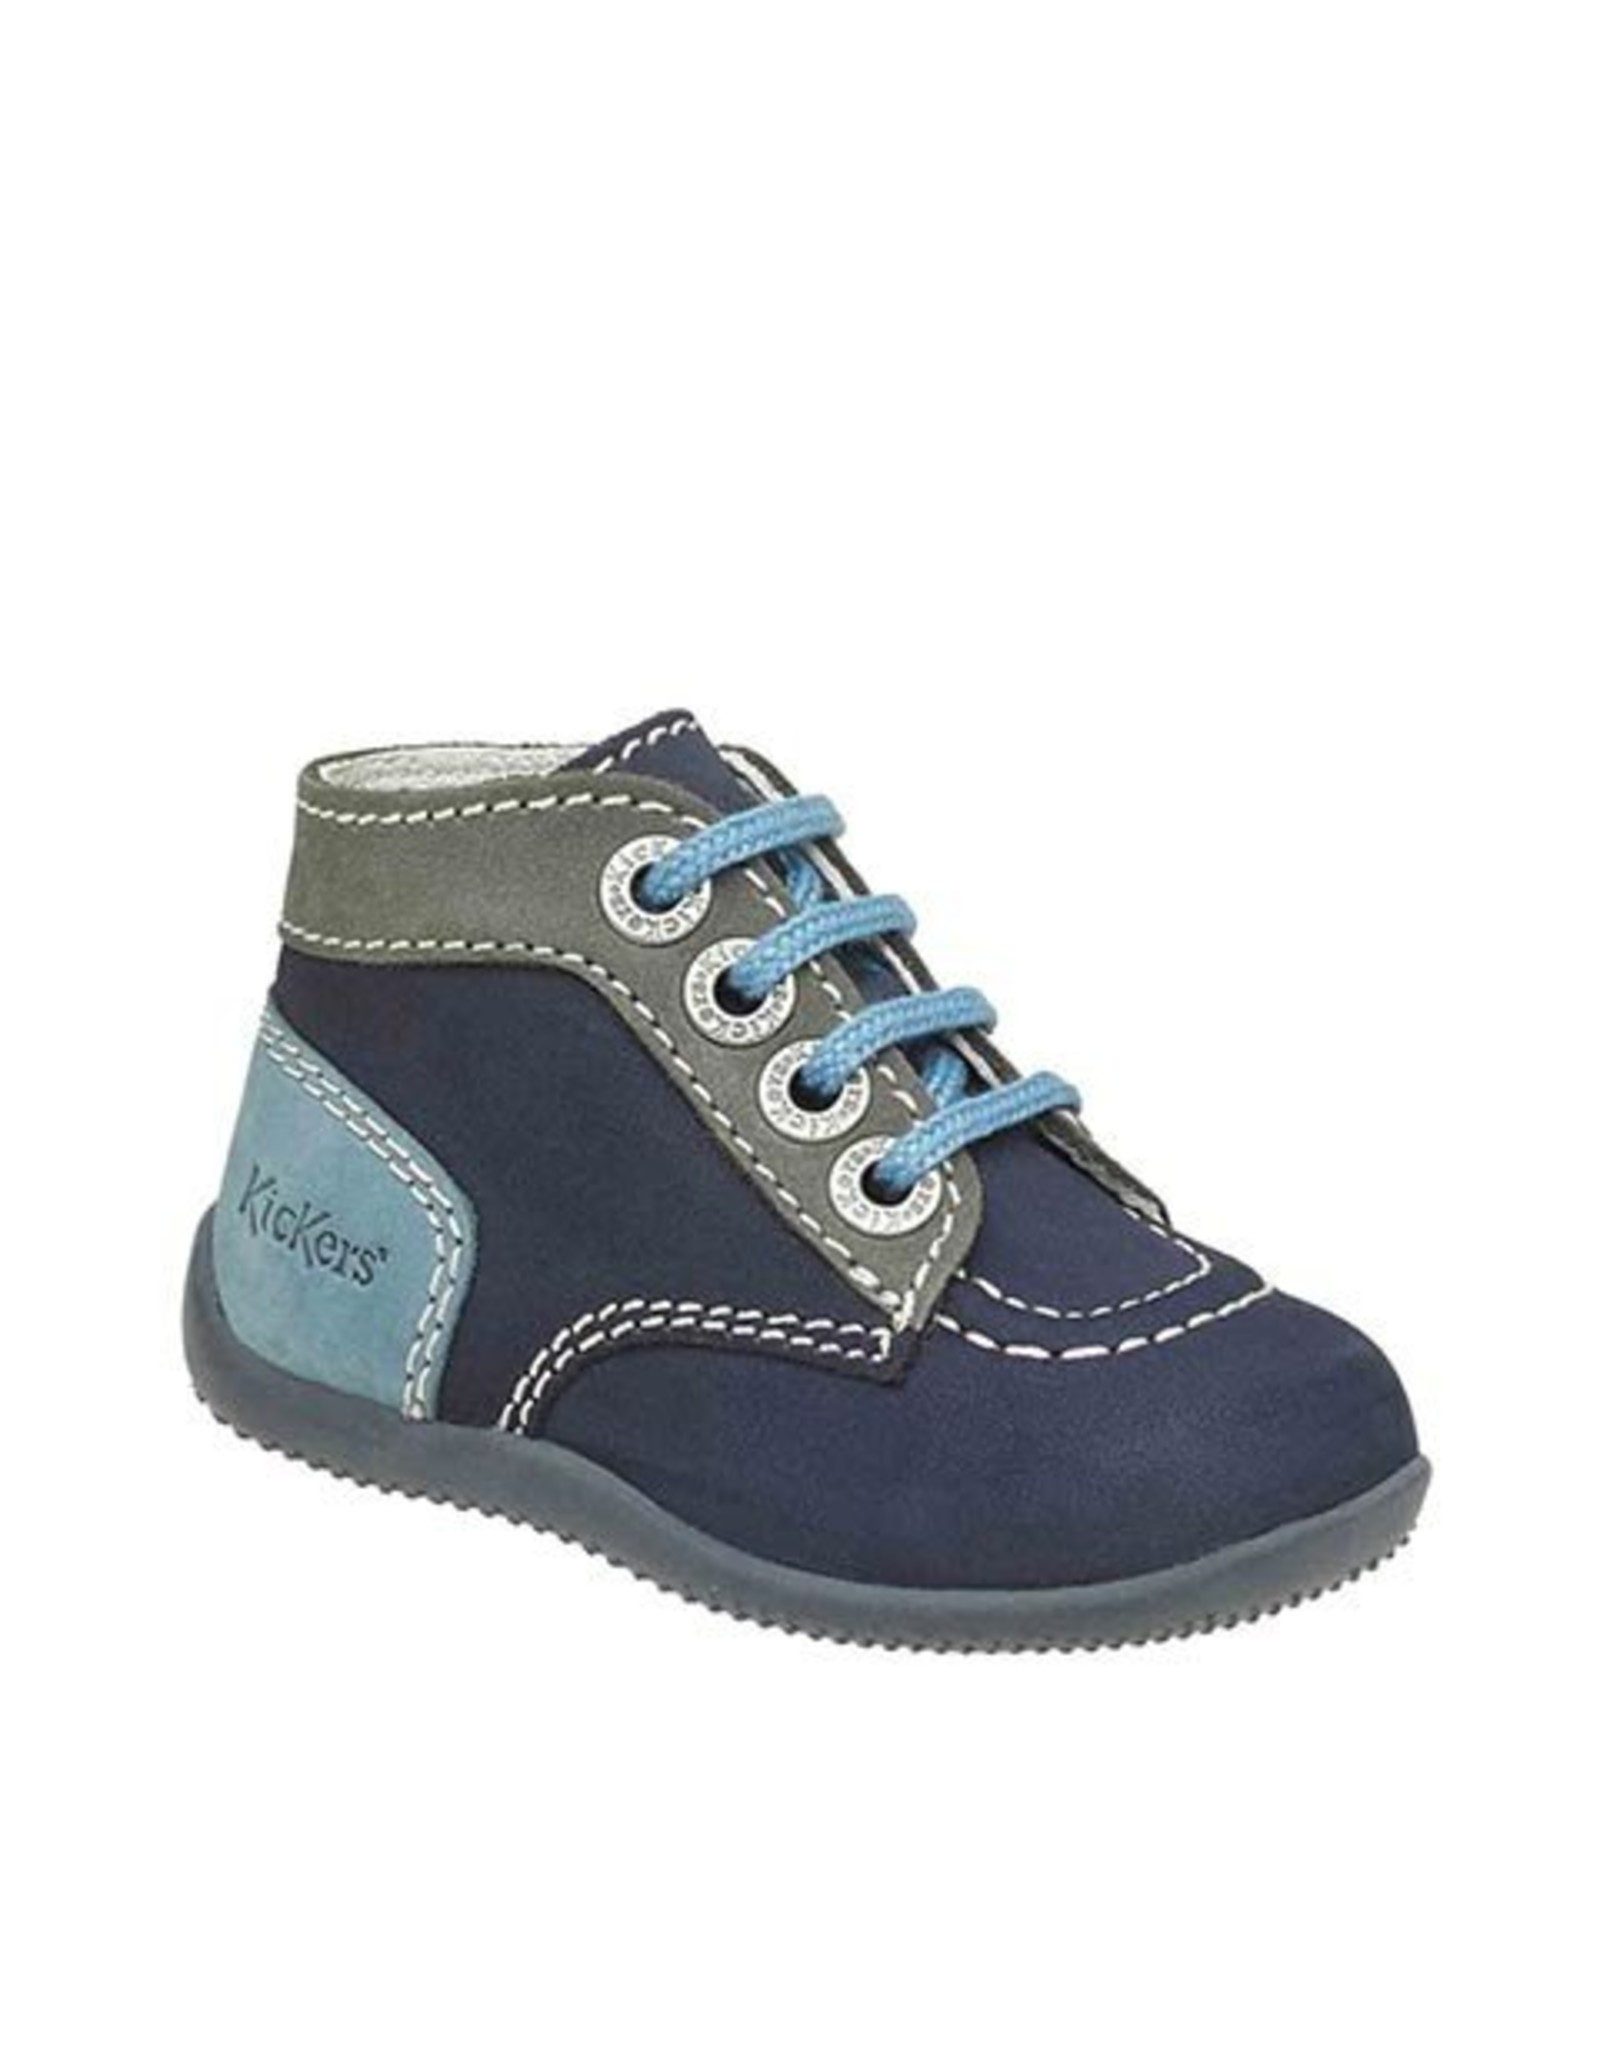 KICKERS BONBON NAVY GRAY BLUE KN3MG